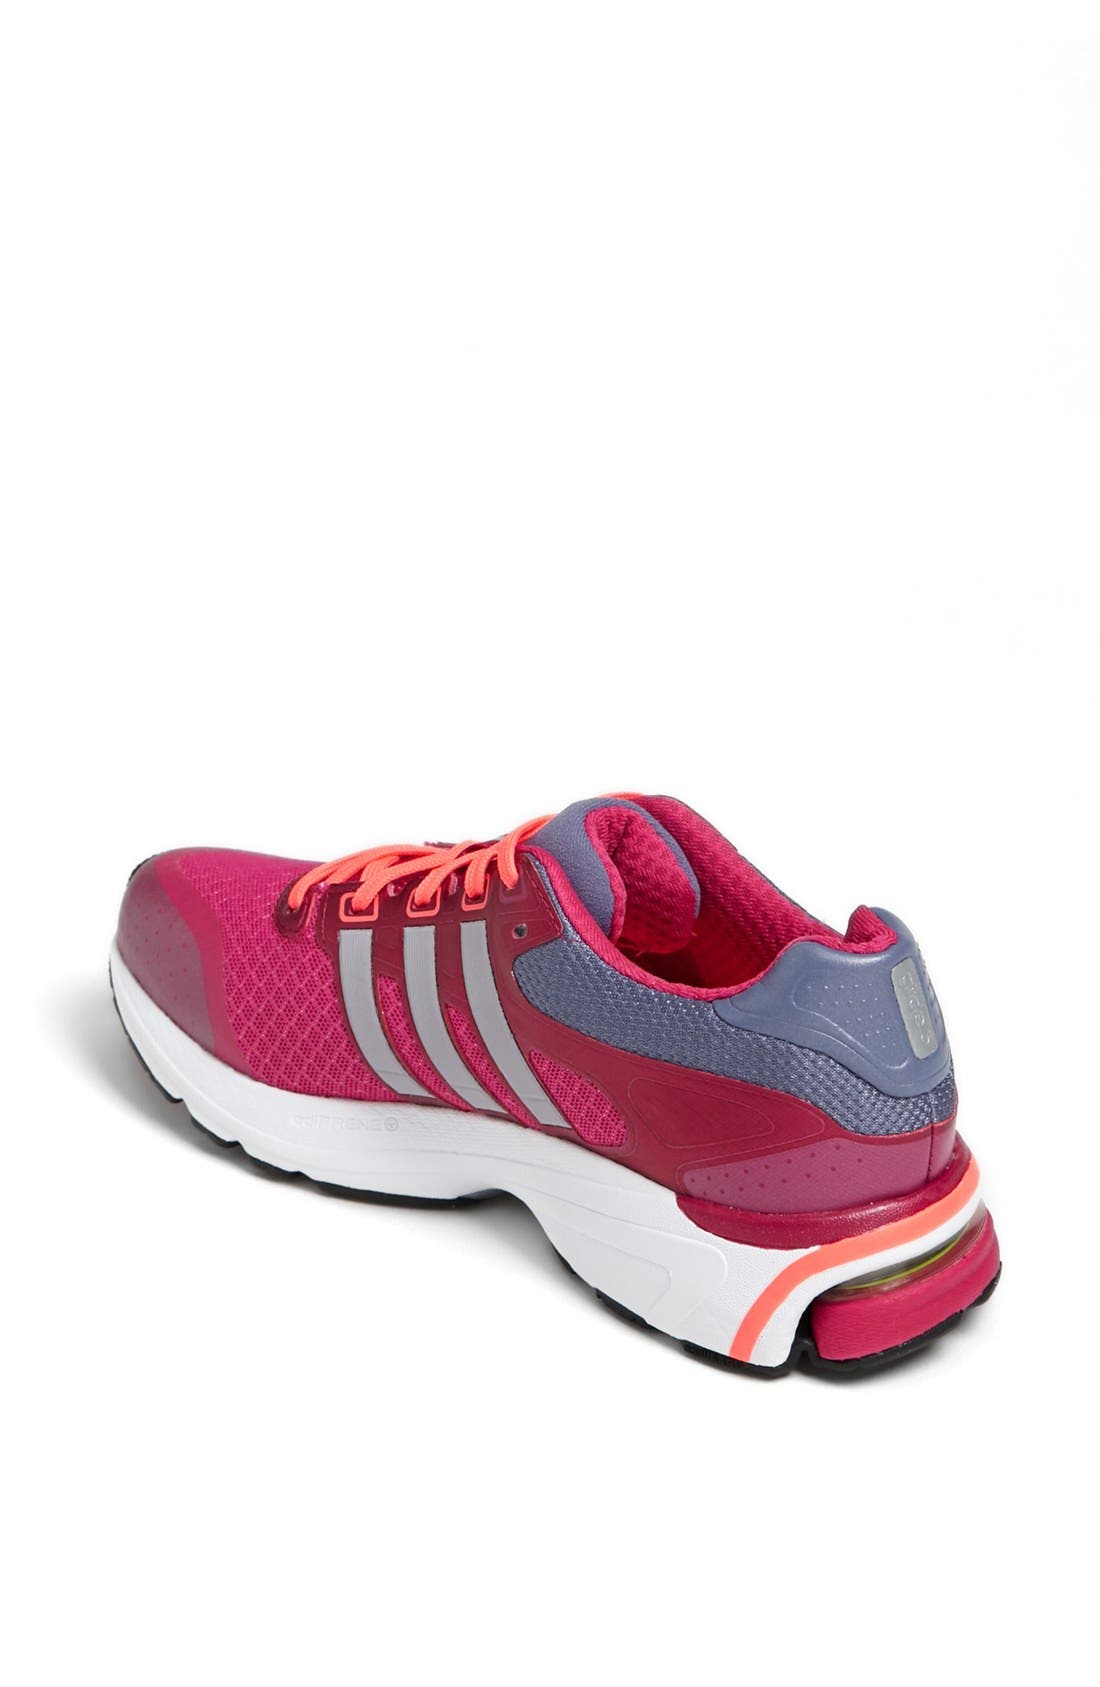 Alternate Image 2  - adidas 'Supernova Glide 5' Running Shoe (Women)